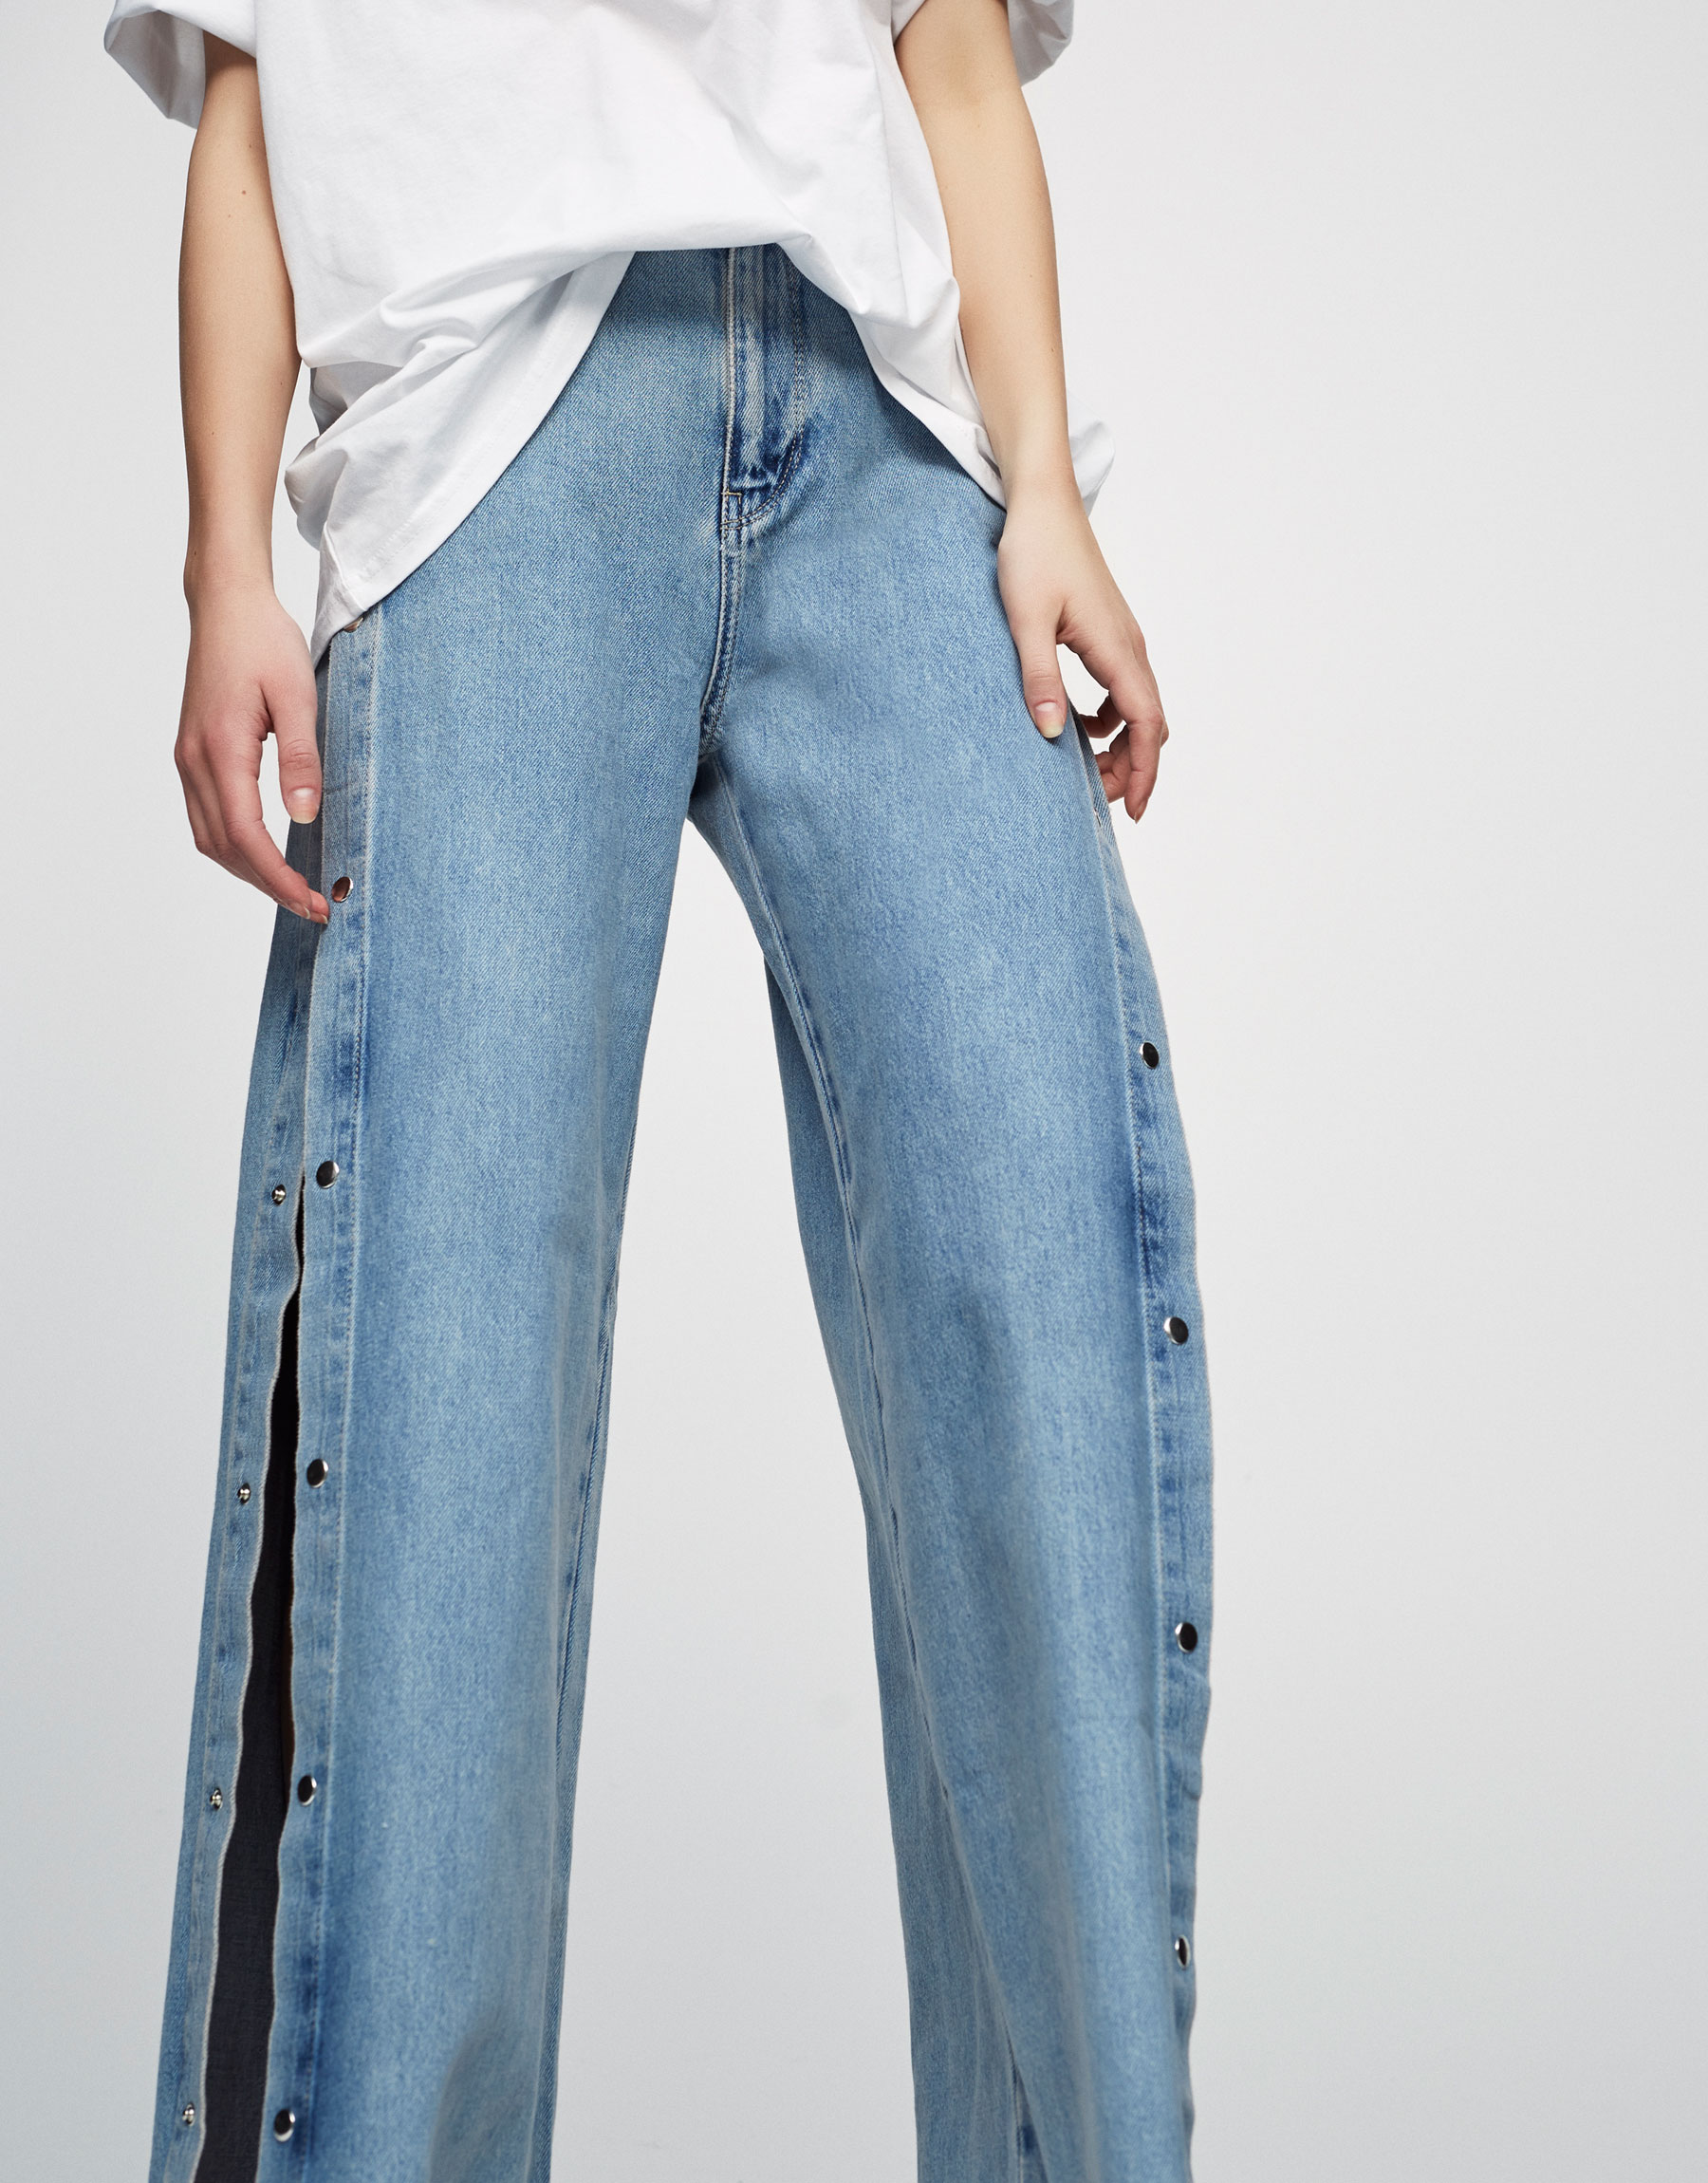 Jeans relaxed fit aberturas laterales